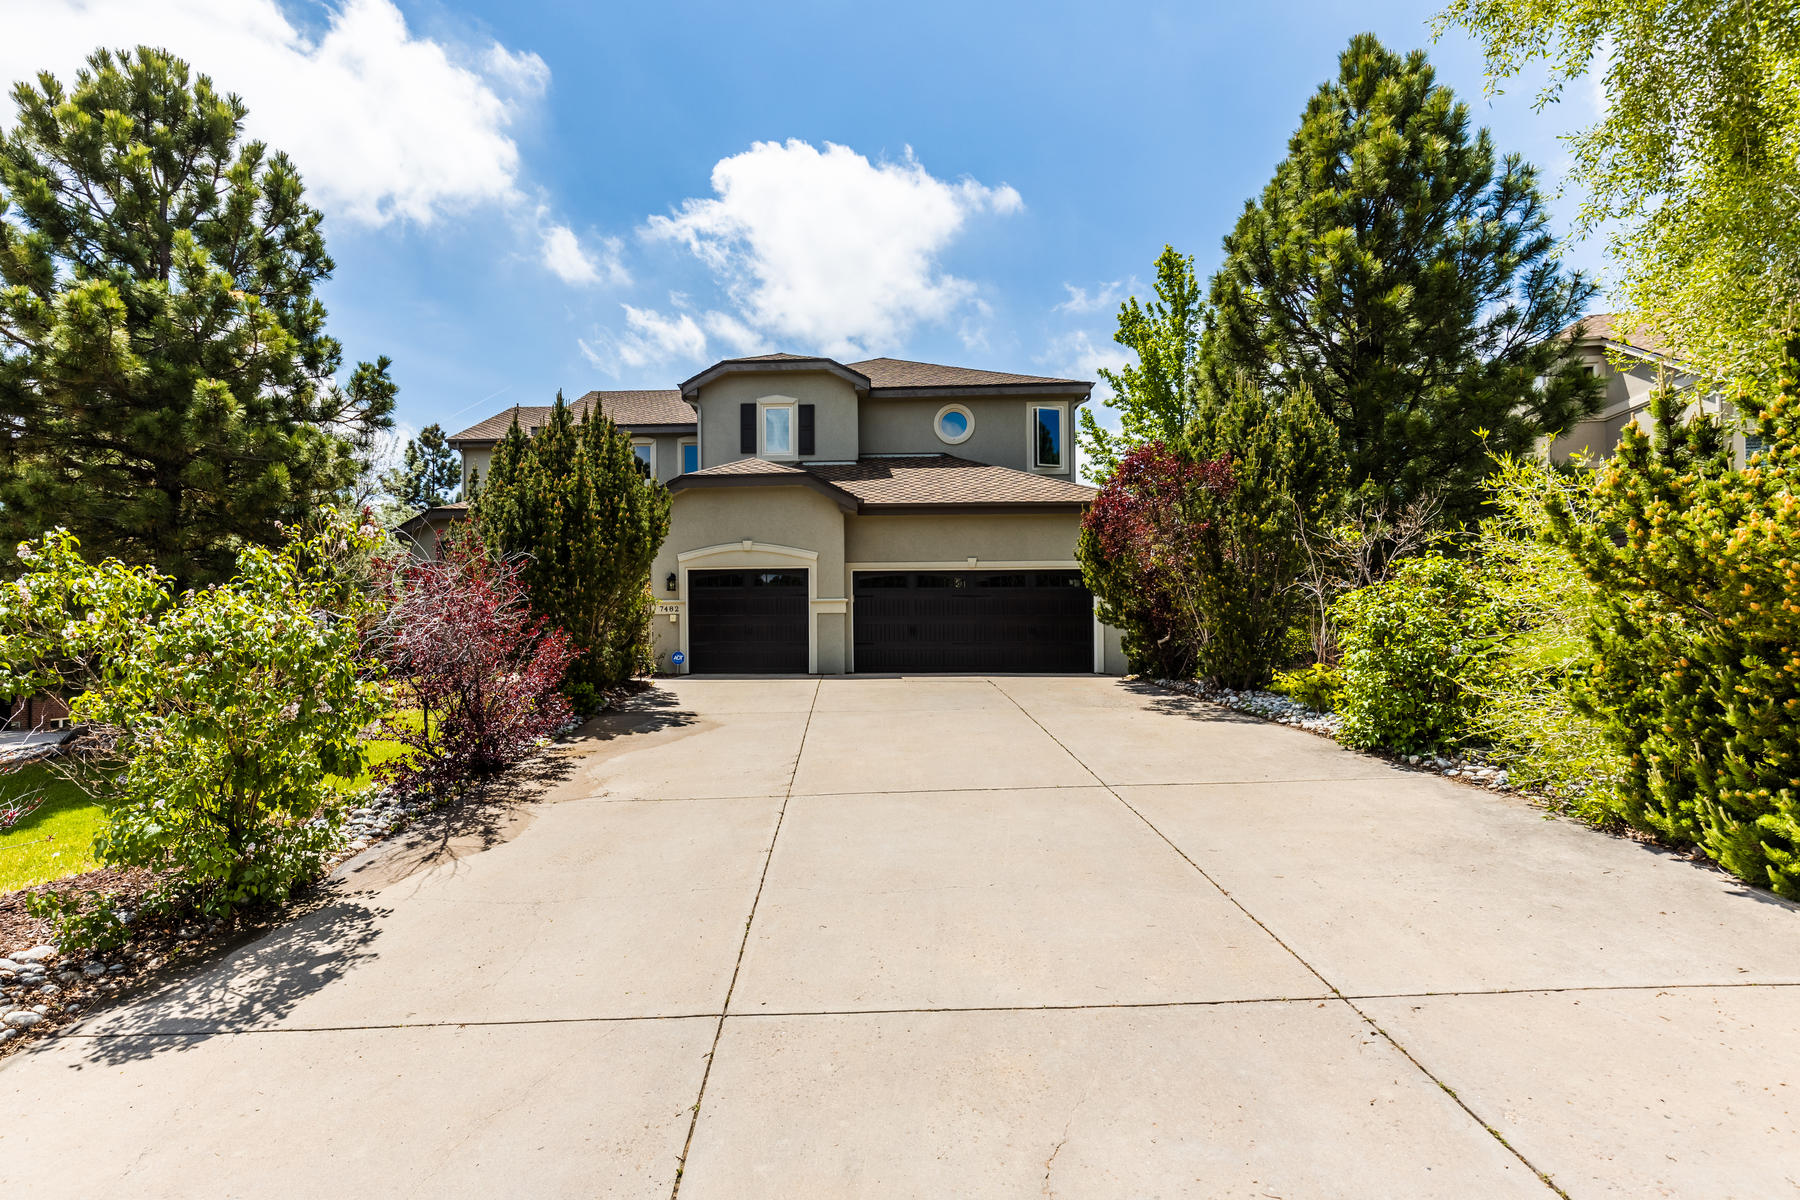 Single Family Homes for Active at Stunning Home On the Golf Course in Geln Oakes 7482 Glen Ridge Drive Castle Pines, Colorado 80108 United States